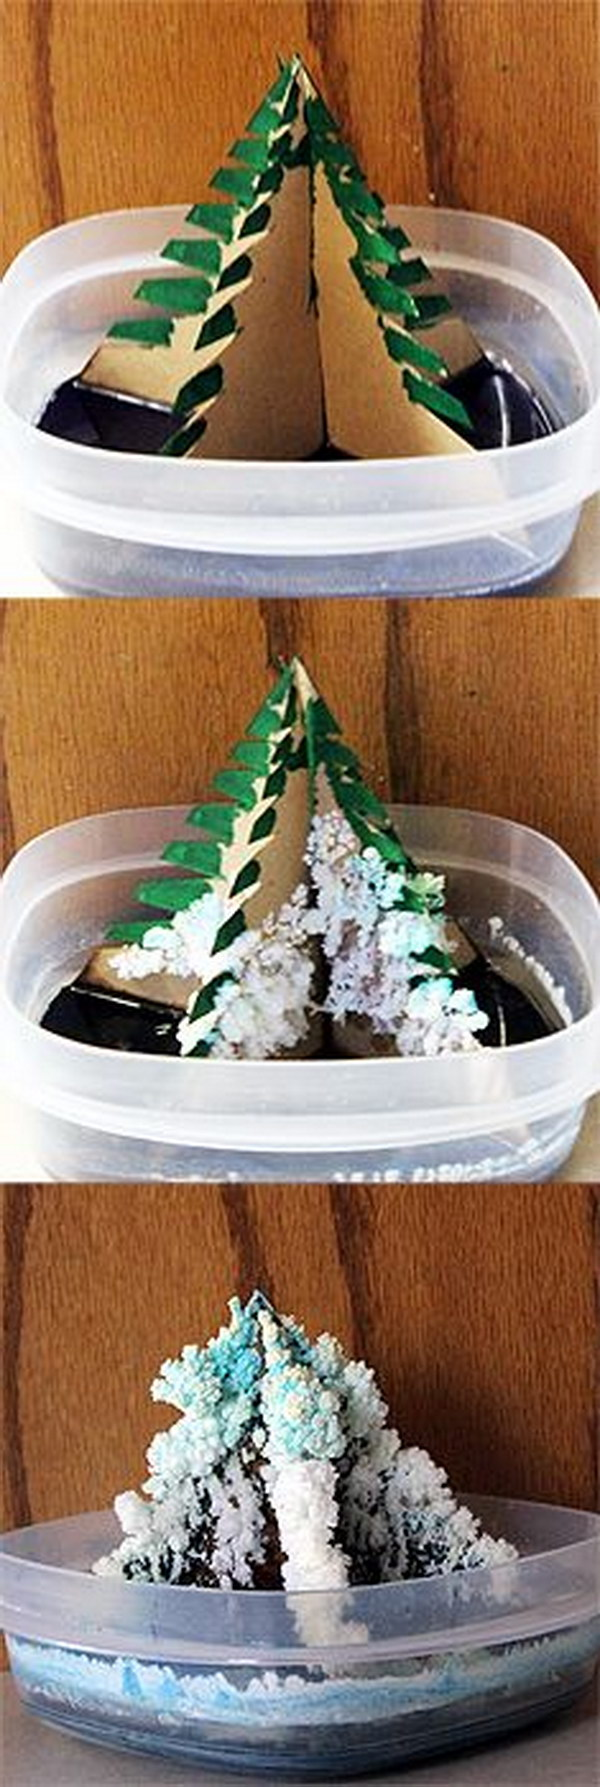 science christmas experiments activities experiment cool tree fun grow own crystal chemistry holiday crystals hative easy theeducatorsspinonit growing winter kid